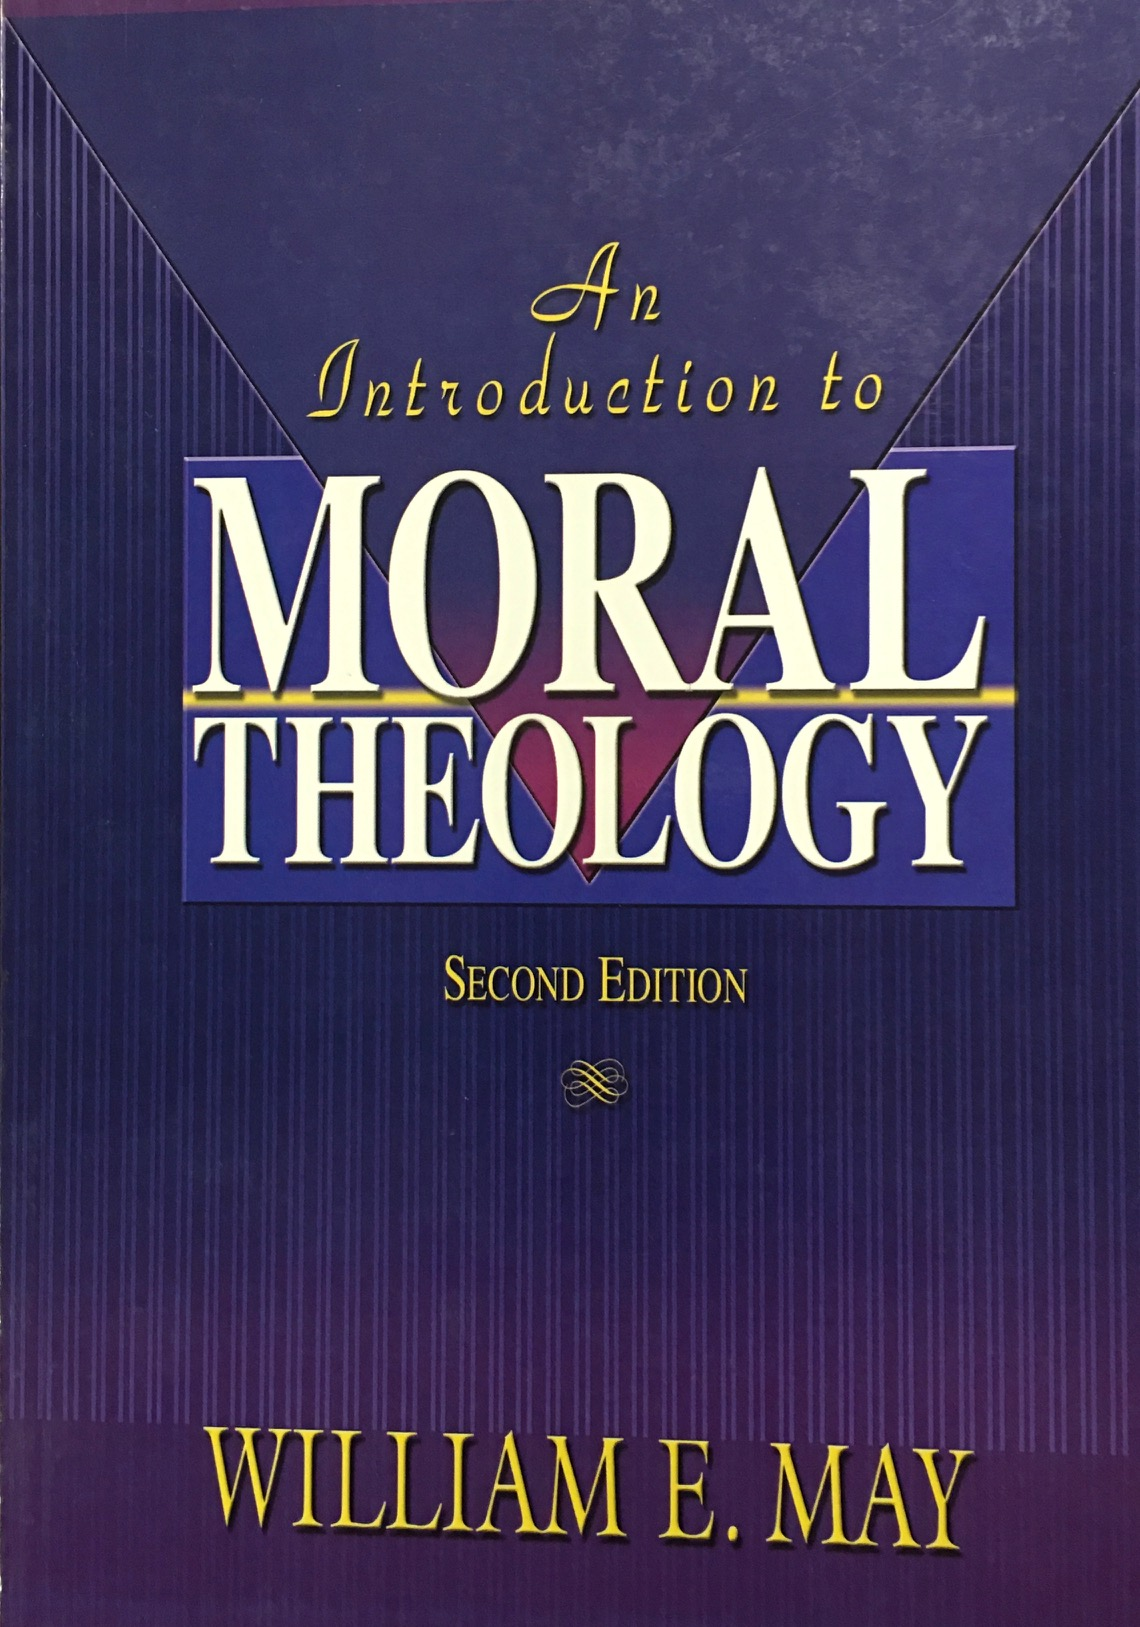 Image for Introduction to Moral Theology - 2nd Edition